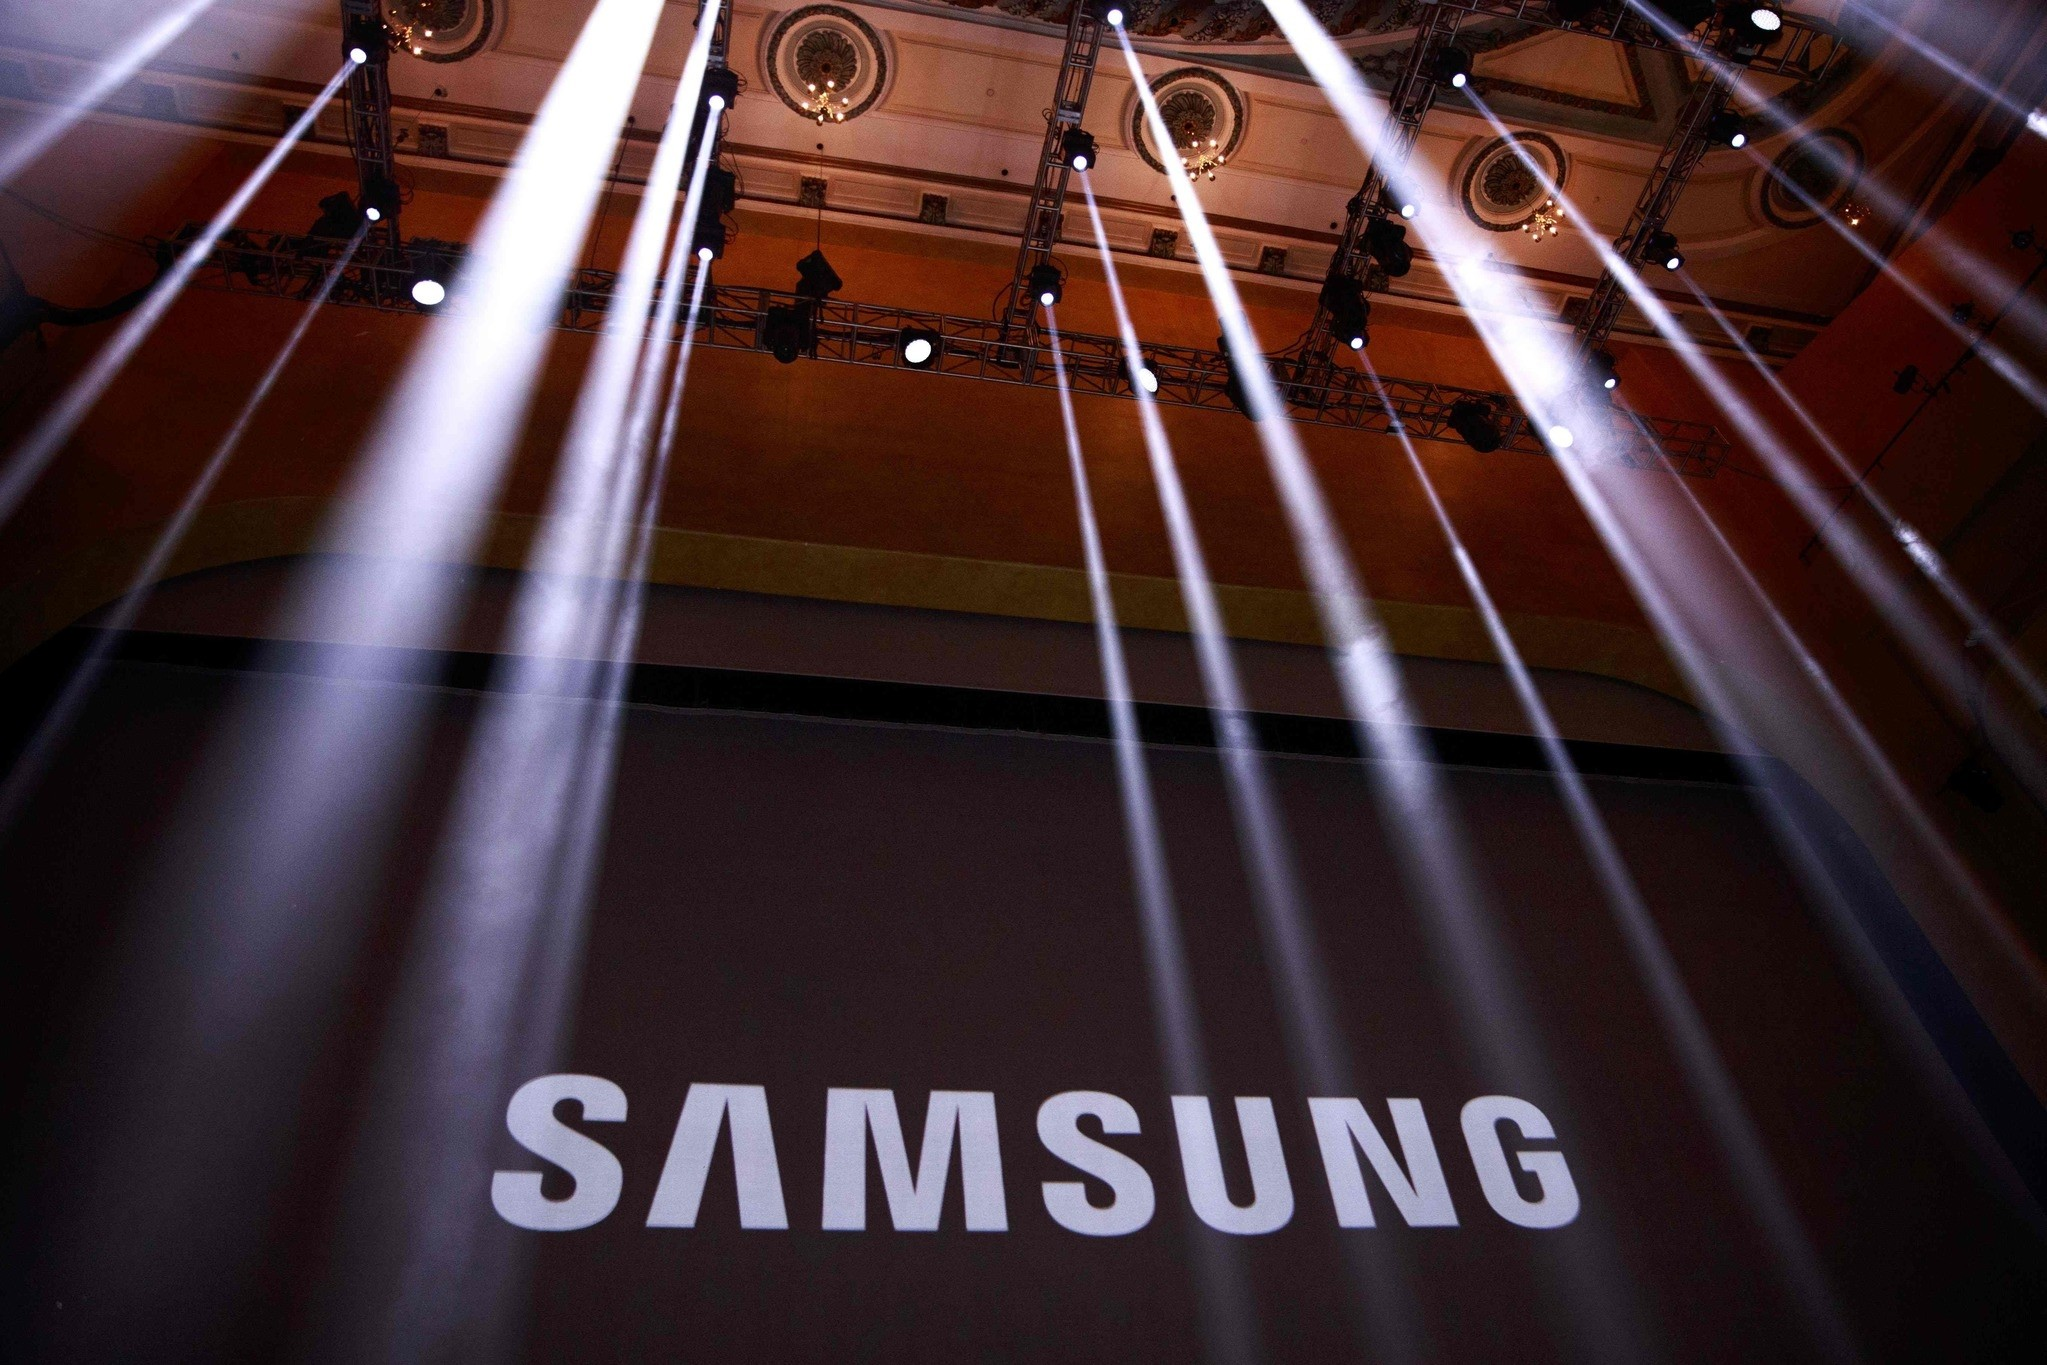 This file photo taken on August 1, 2016 shows the Samsung logo displayed on a screen prior to the start of a launch event for the Samsung Galaxy Note 7. (AFP Photo)